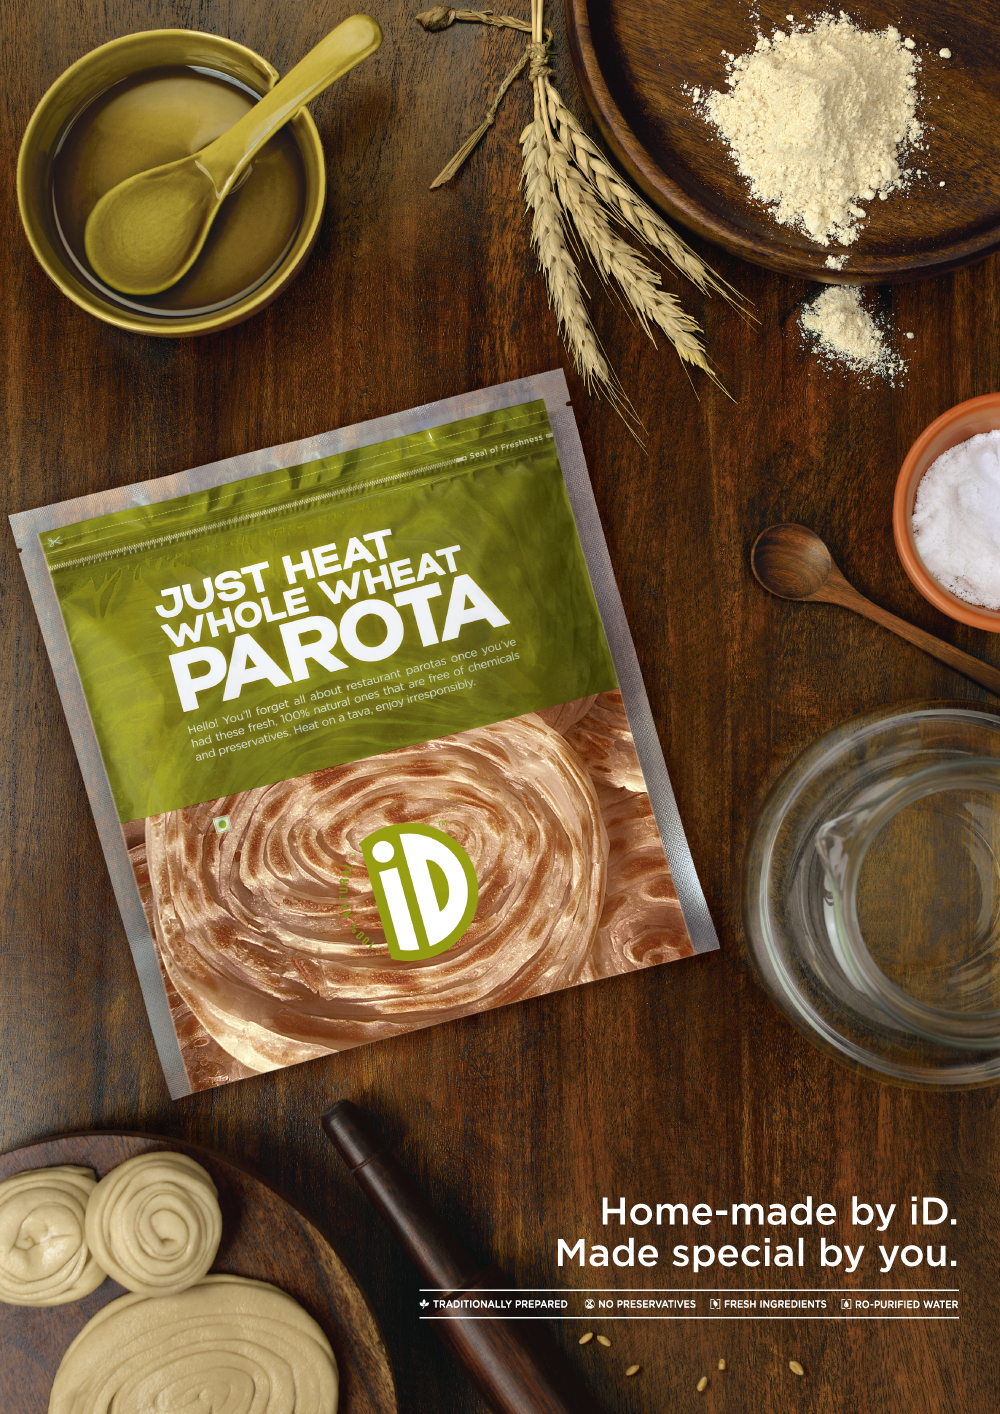 IDLaunch2015-Parota-Wholewheat.jpg